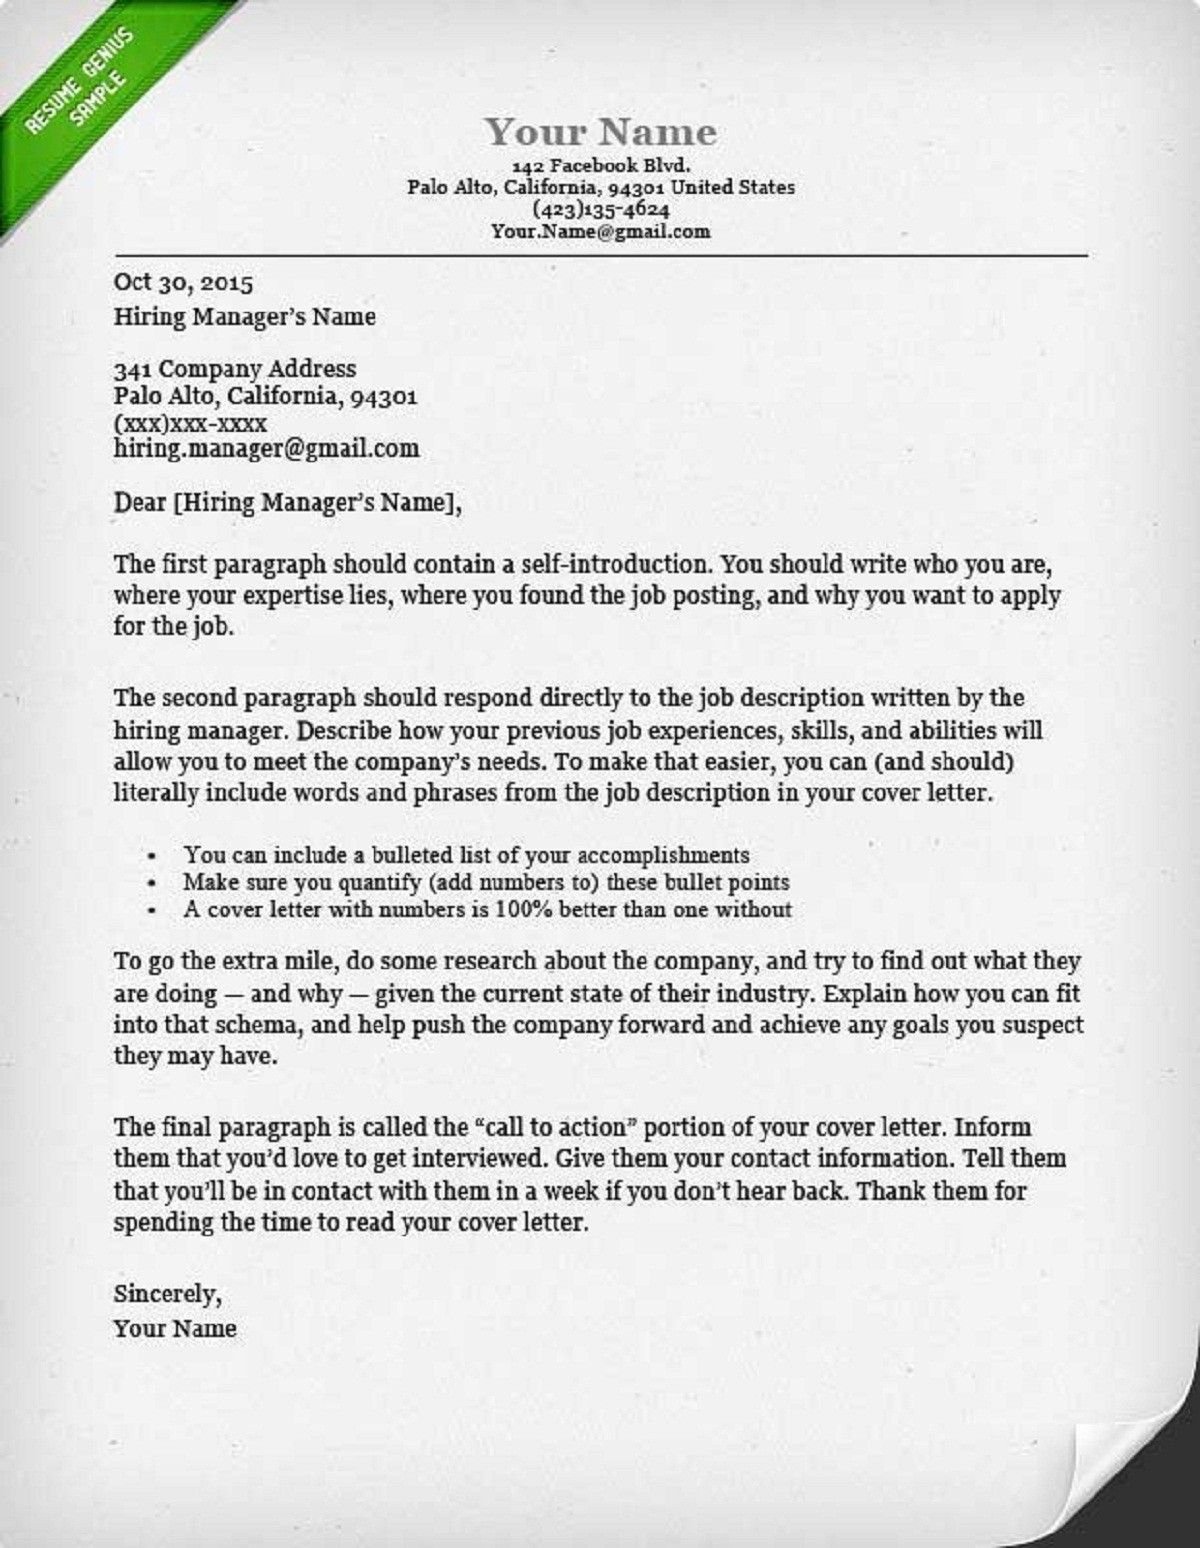 The Best Resume Cover Letter Writing a cover letter